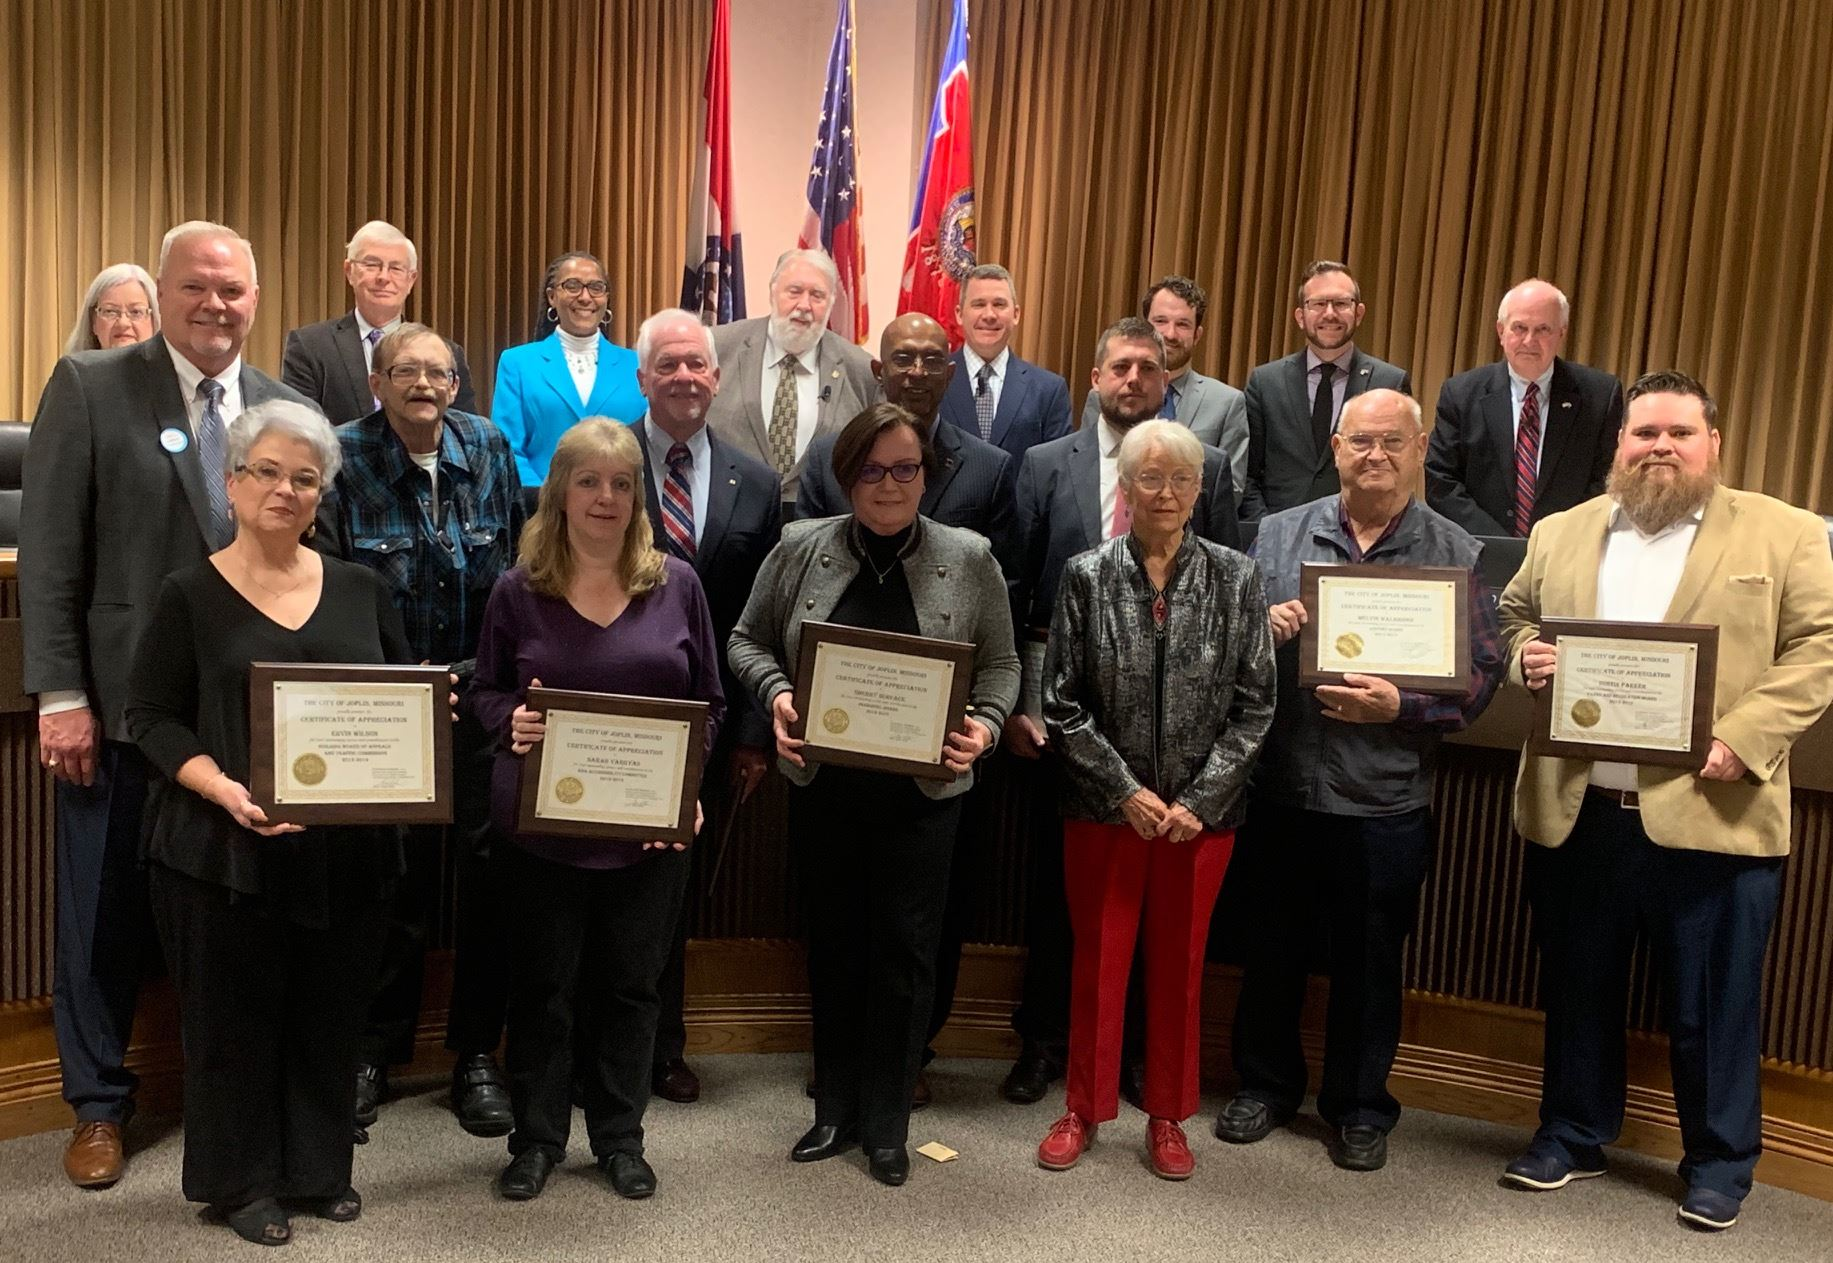 Members of Boards and Commissions who were recognized during Dec. 2, 2019 Council meeting. All have